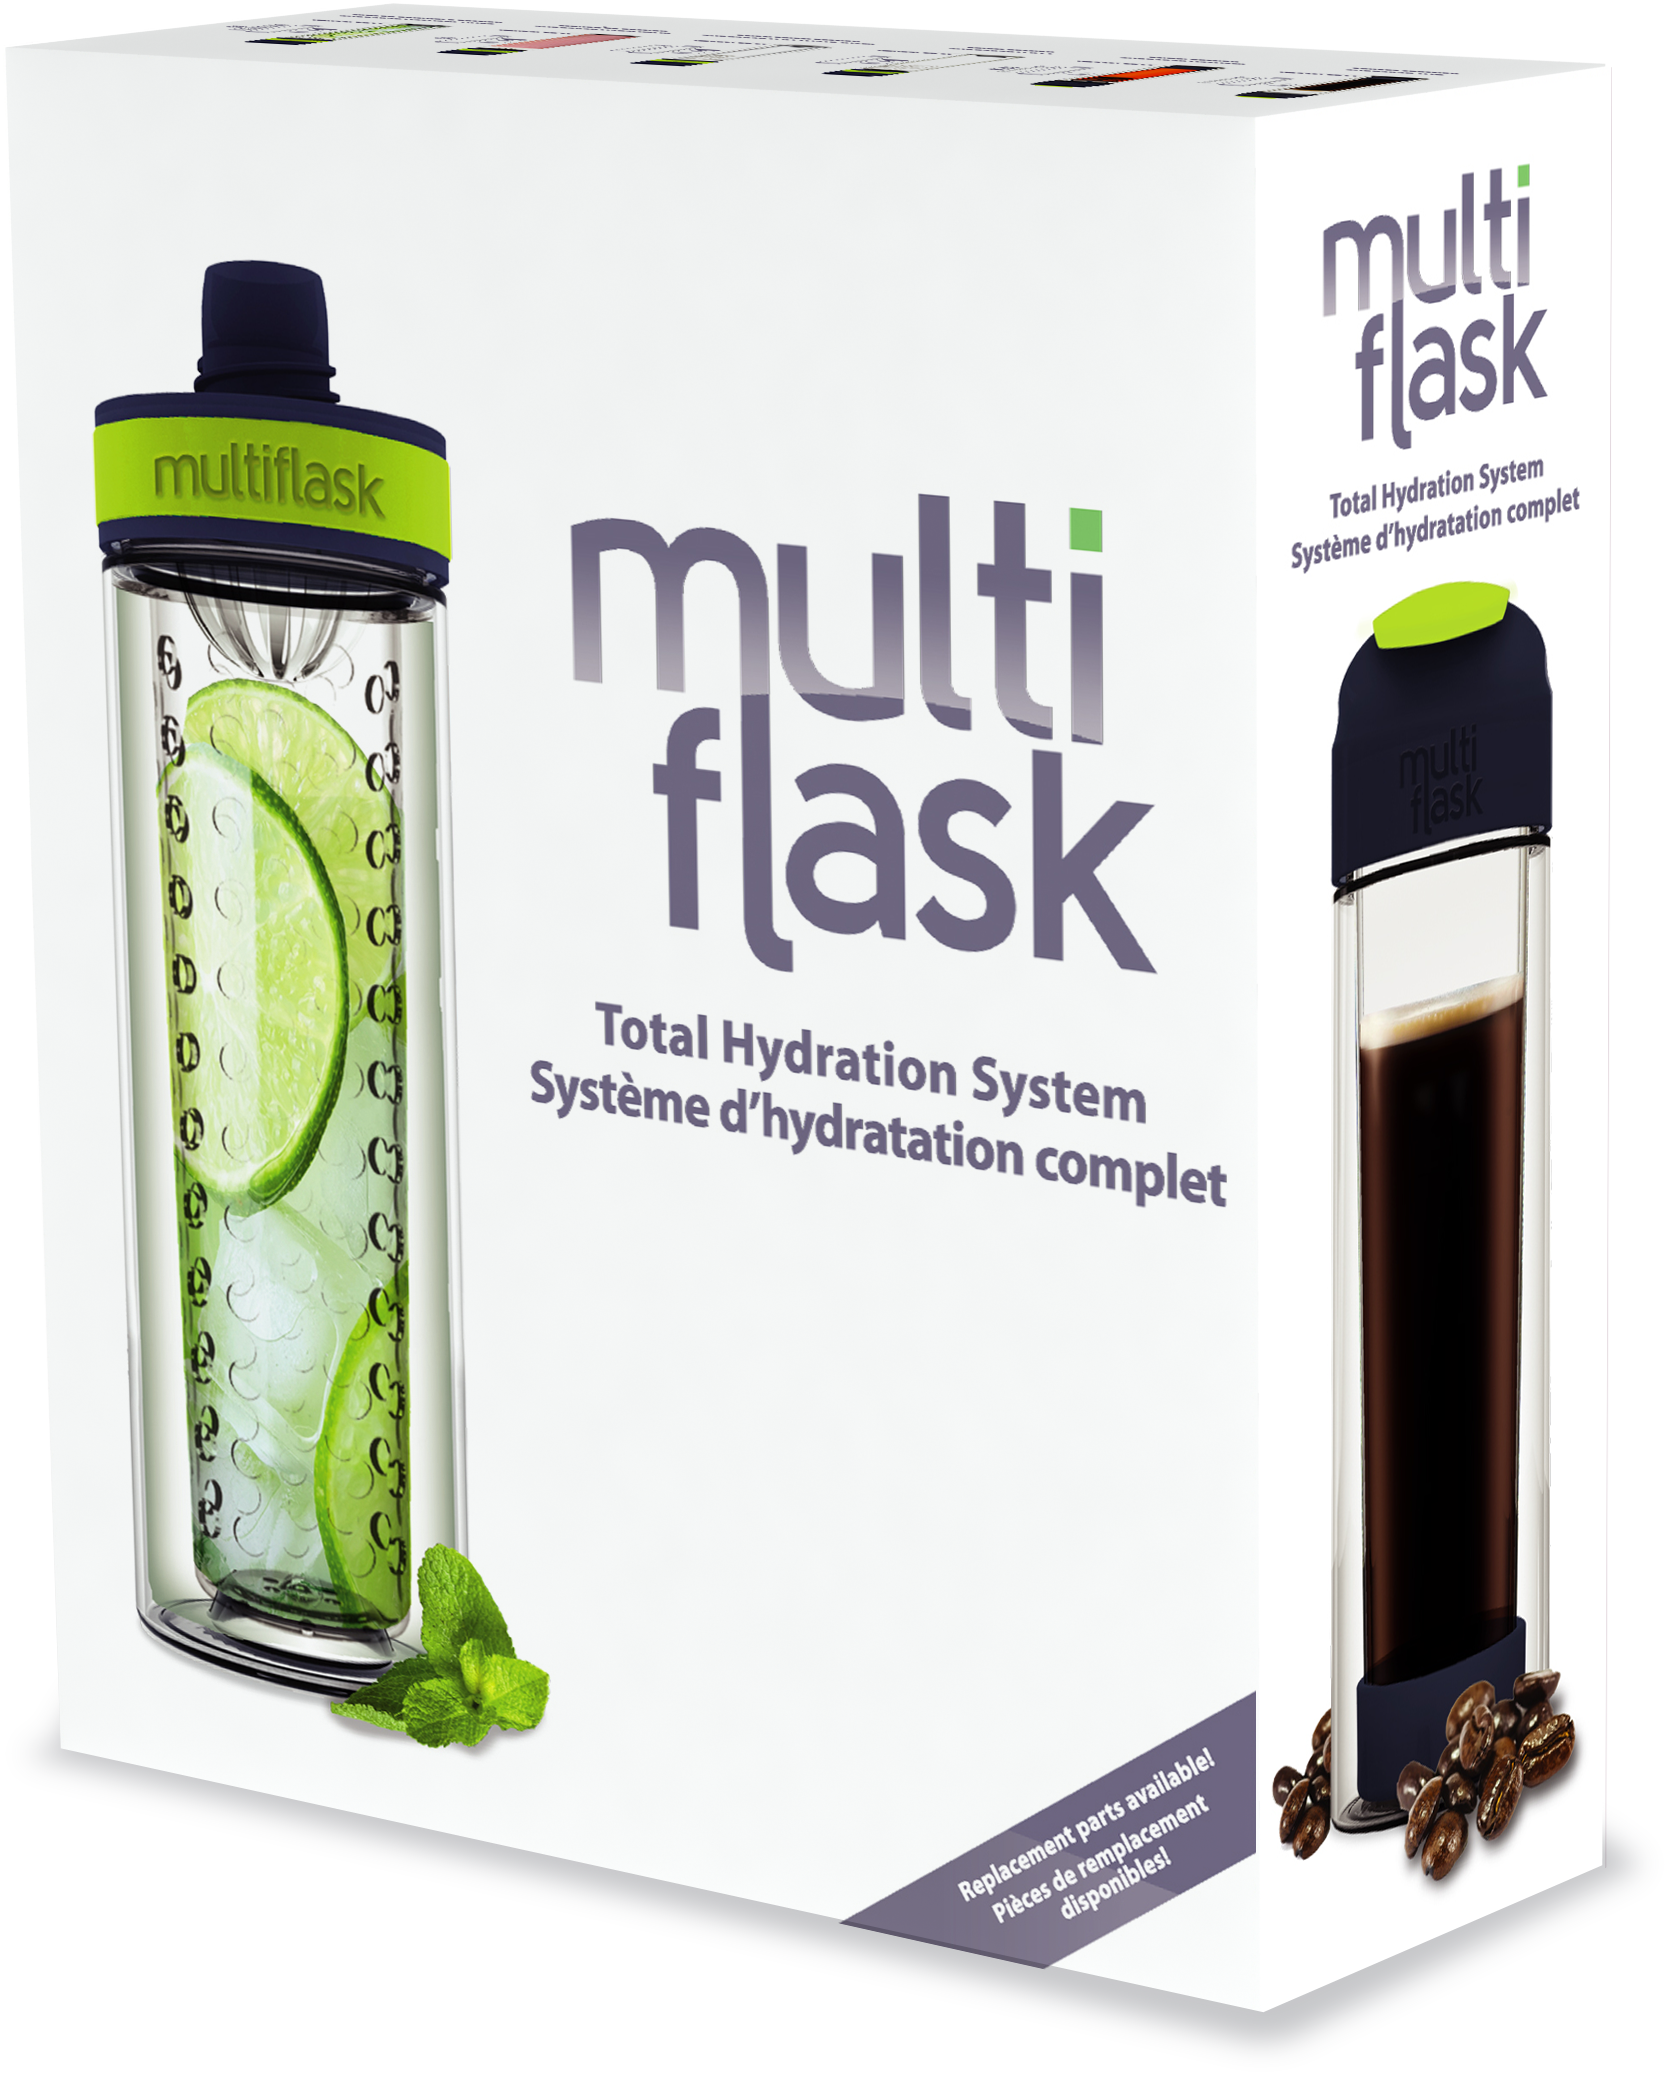 Precidio - Multiflask 6-in-1